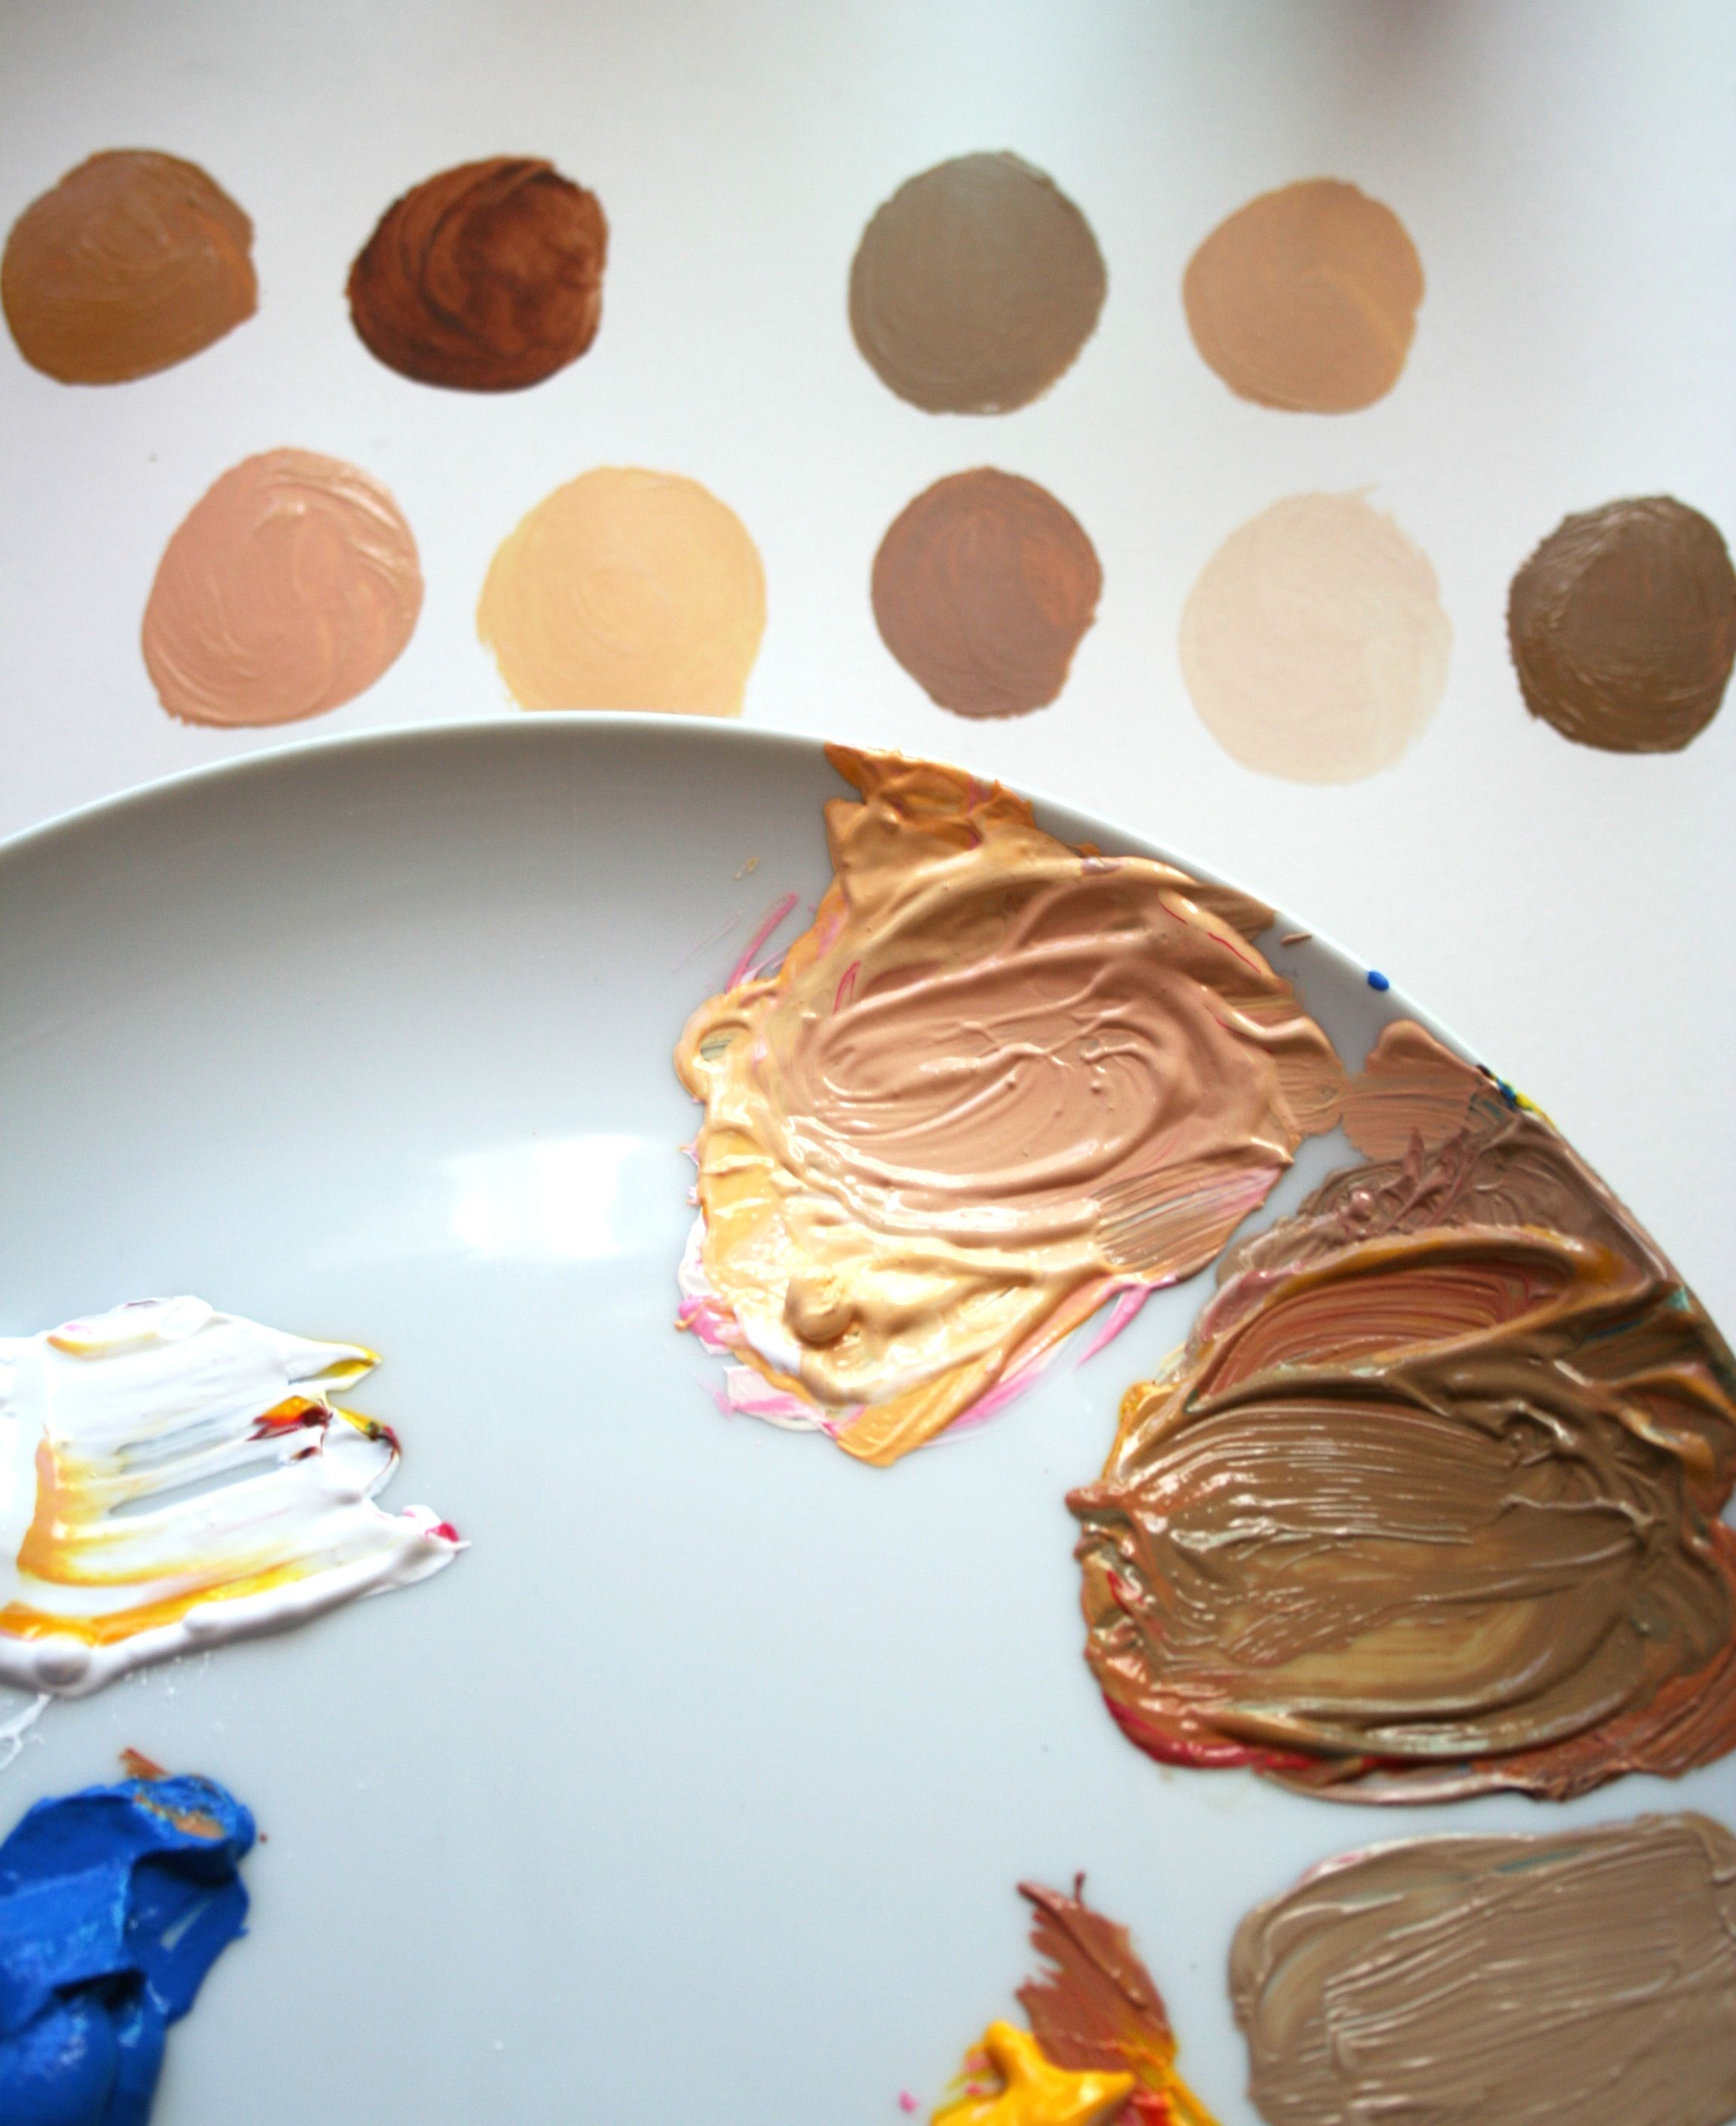 How To Make White Skin Color With Paint : white, color, paint, Craftsy.com, Express, Creativity!, Lessons,, Acrylic, Painting, Tips,, Tutorial